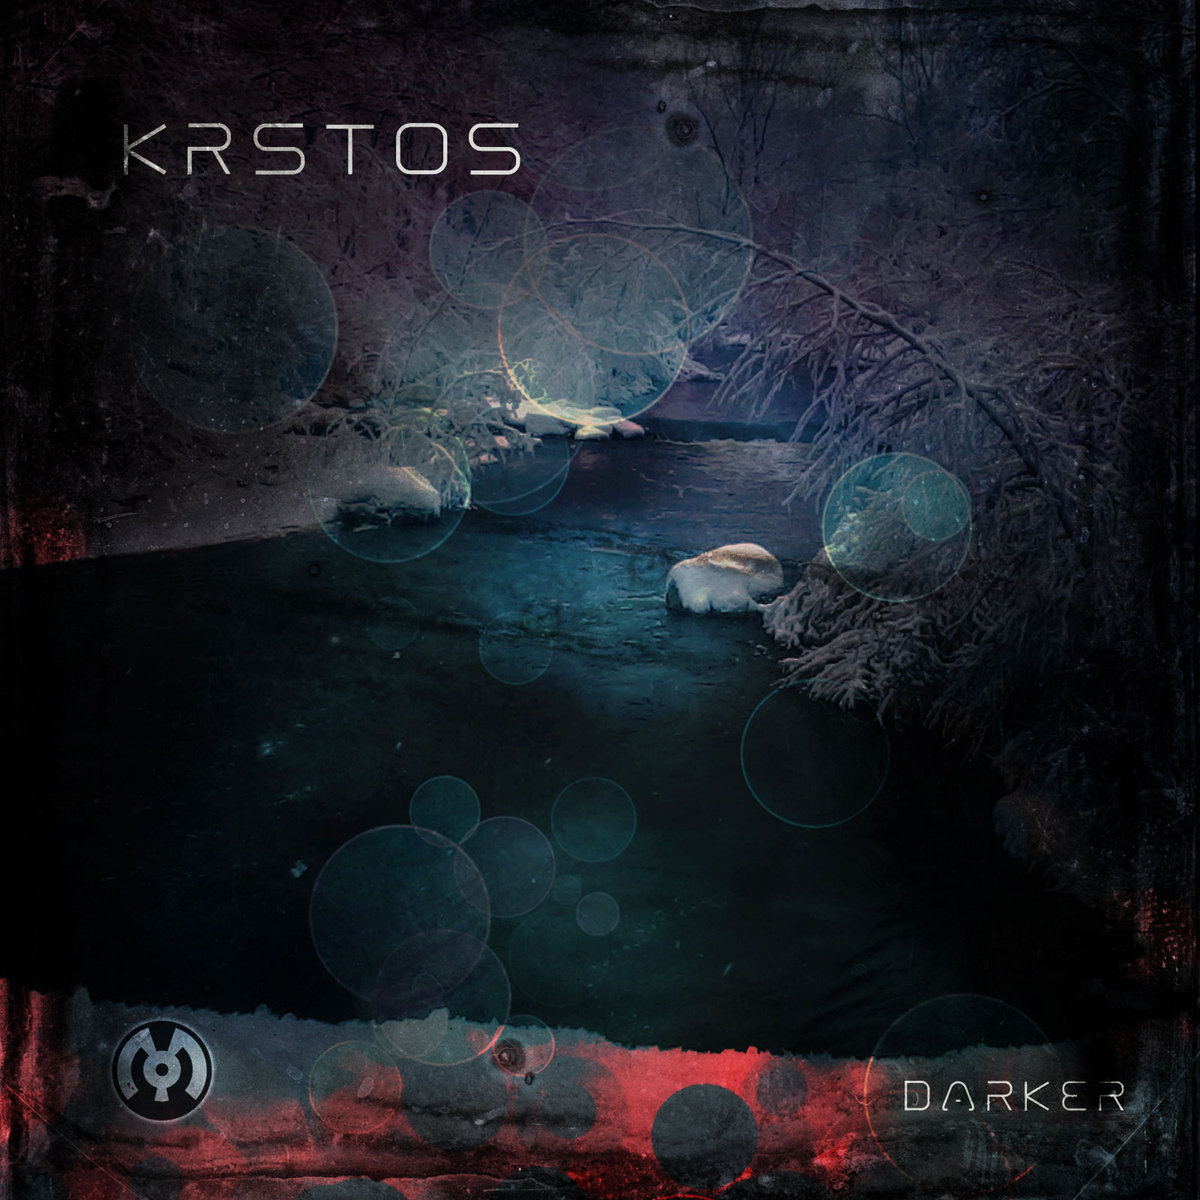 KRSTOS - We Got Walton @ 'Darker' album (electronic, dubstep)